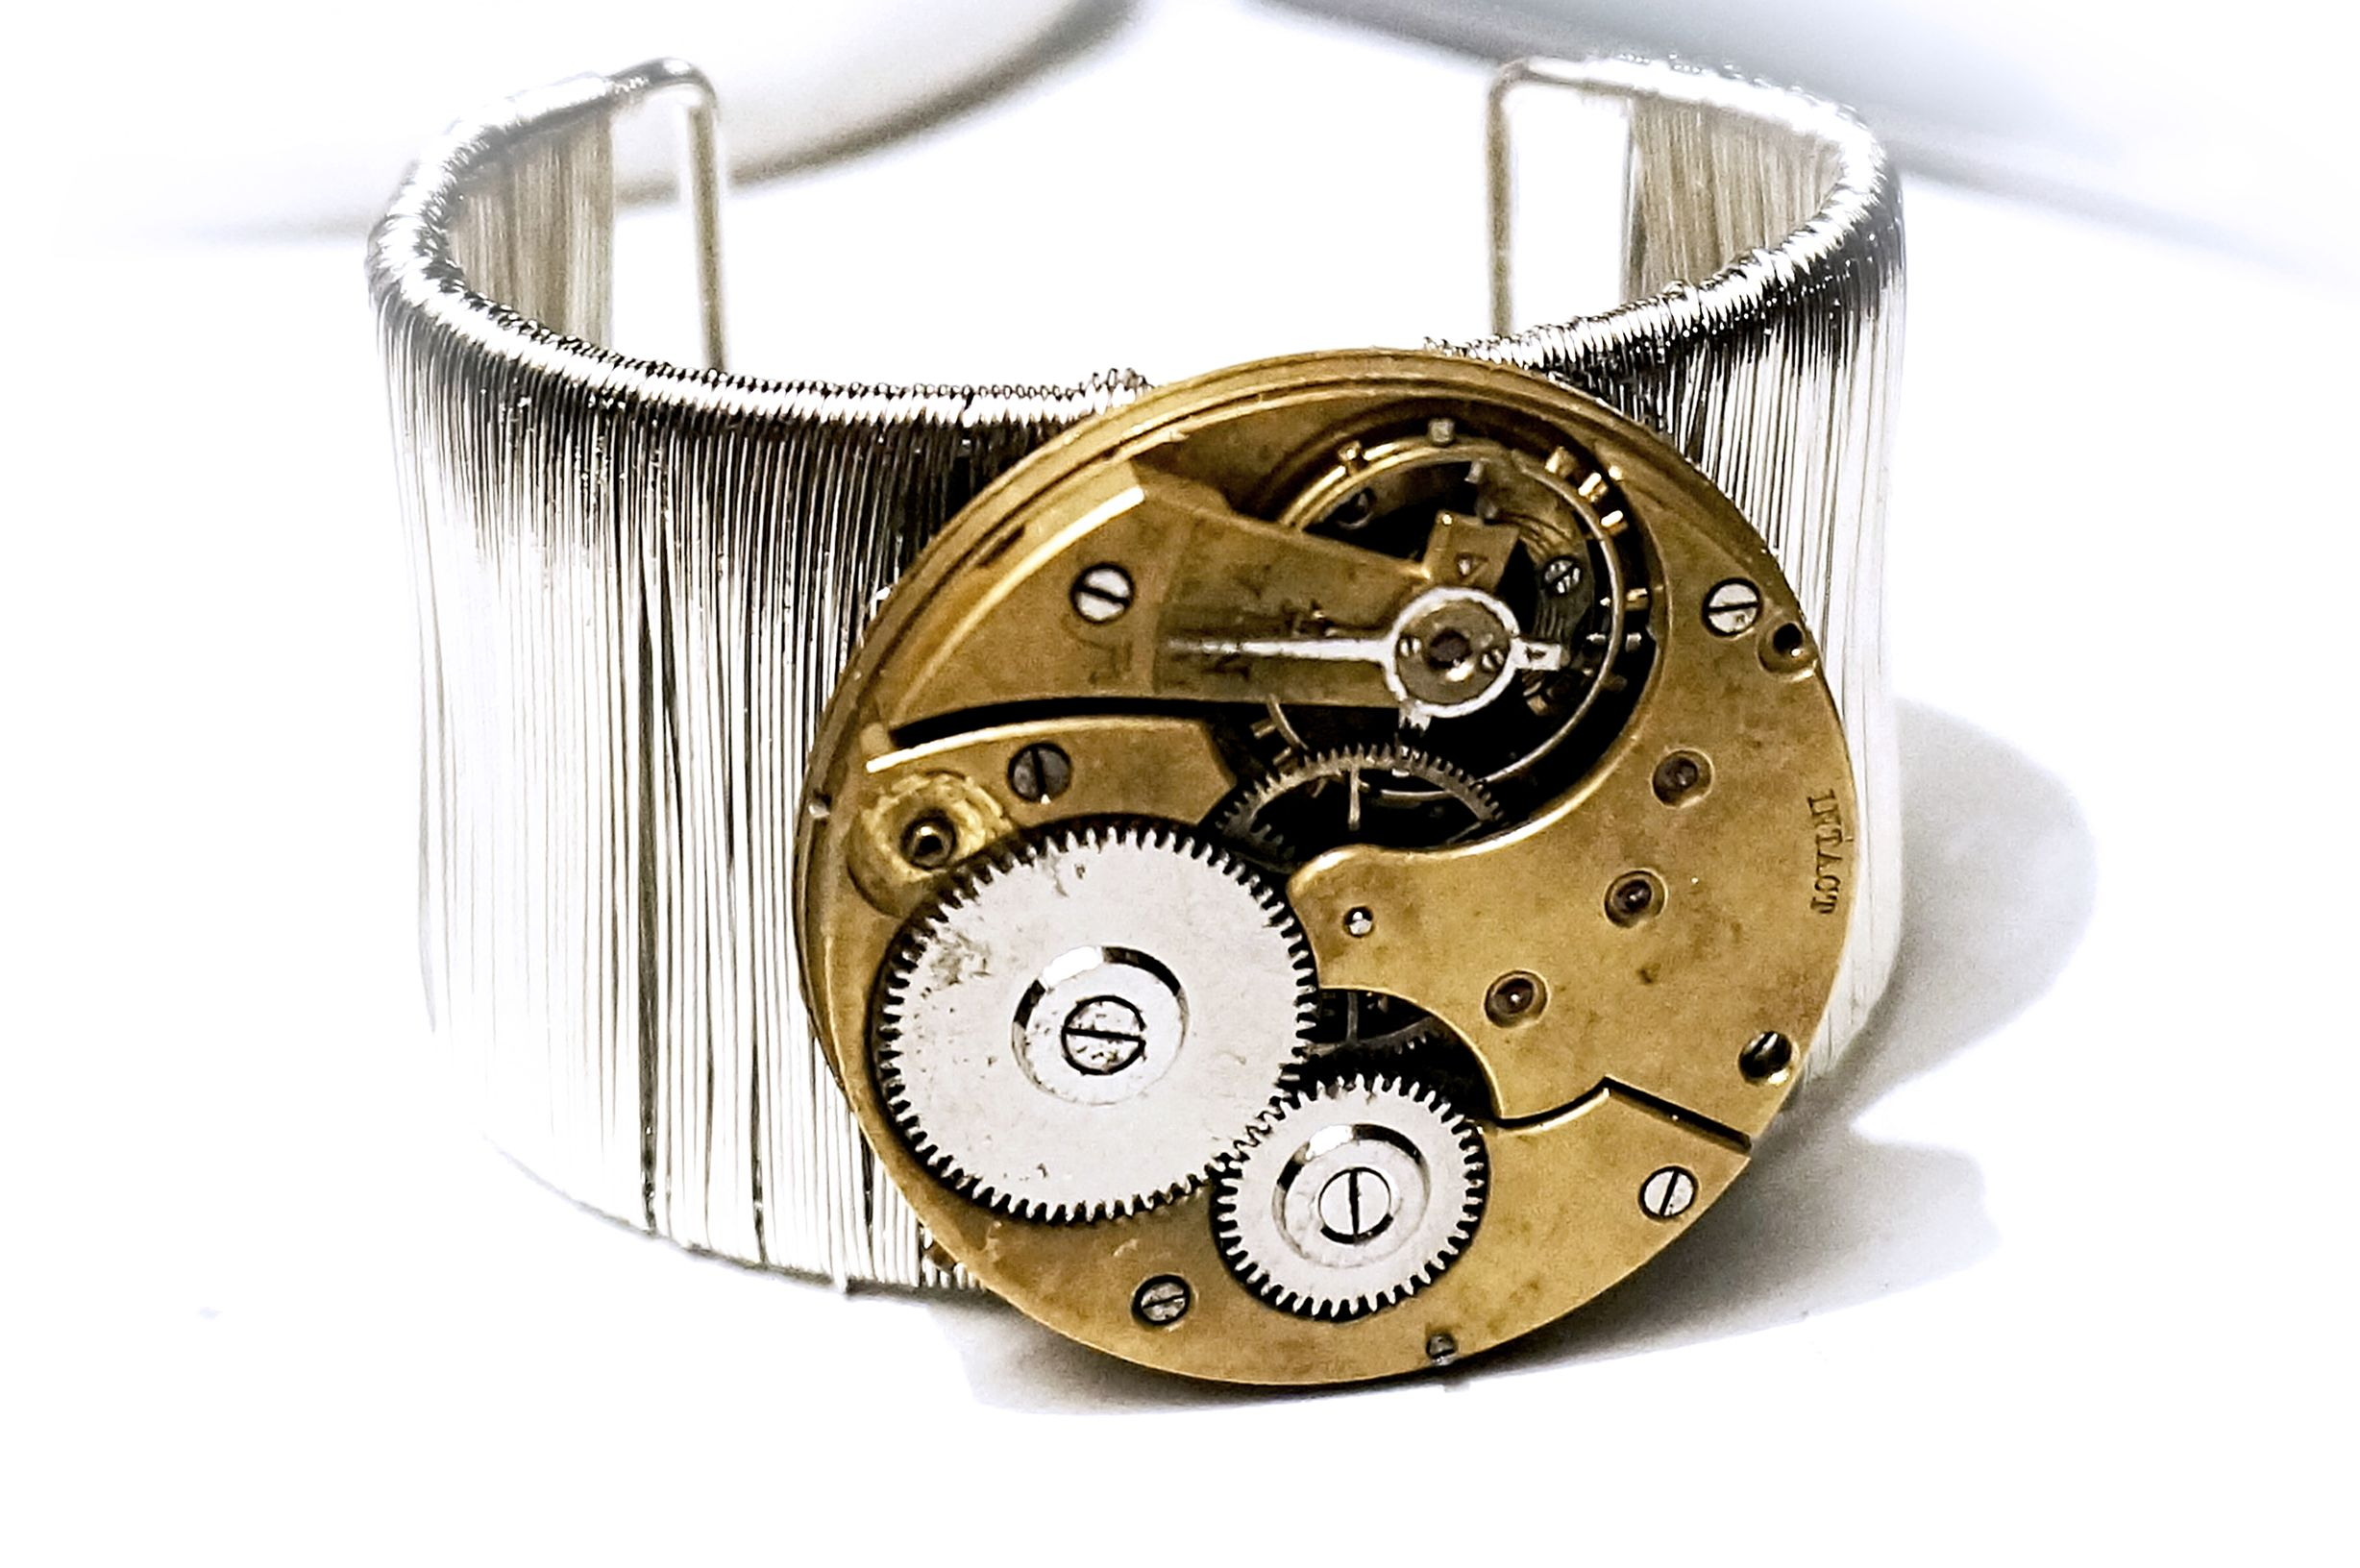 Steampunk BDSM jewelry bracelet burning man costumes coachella